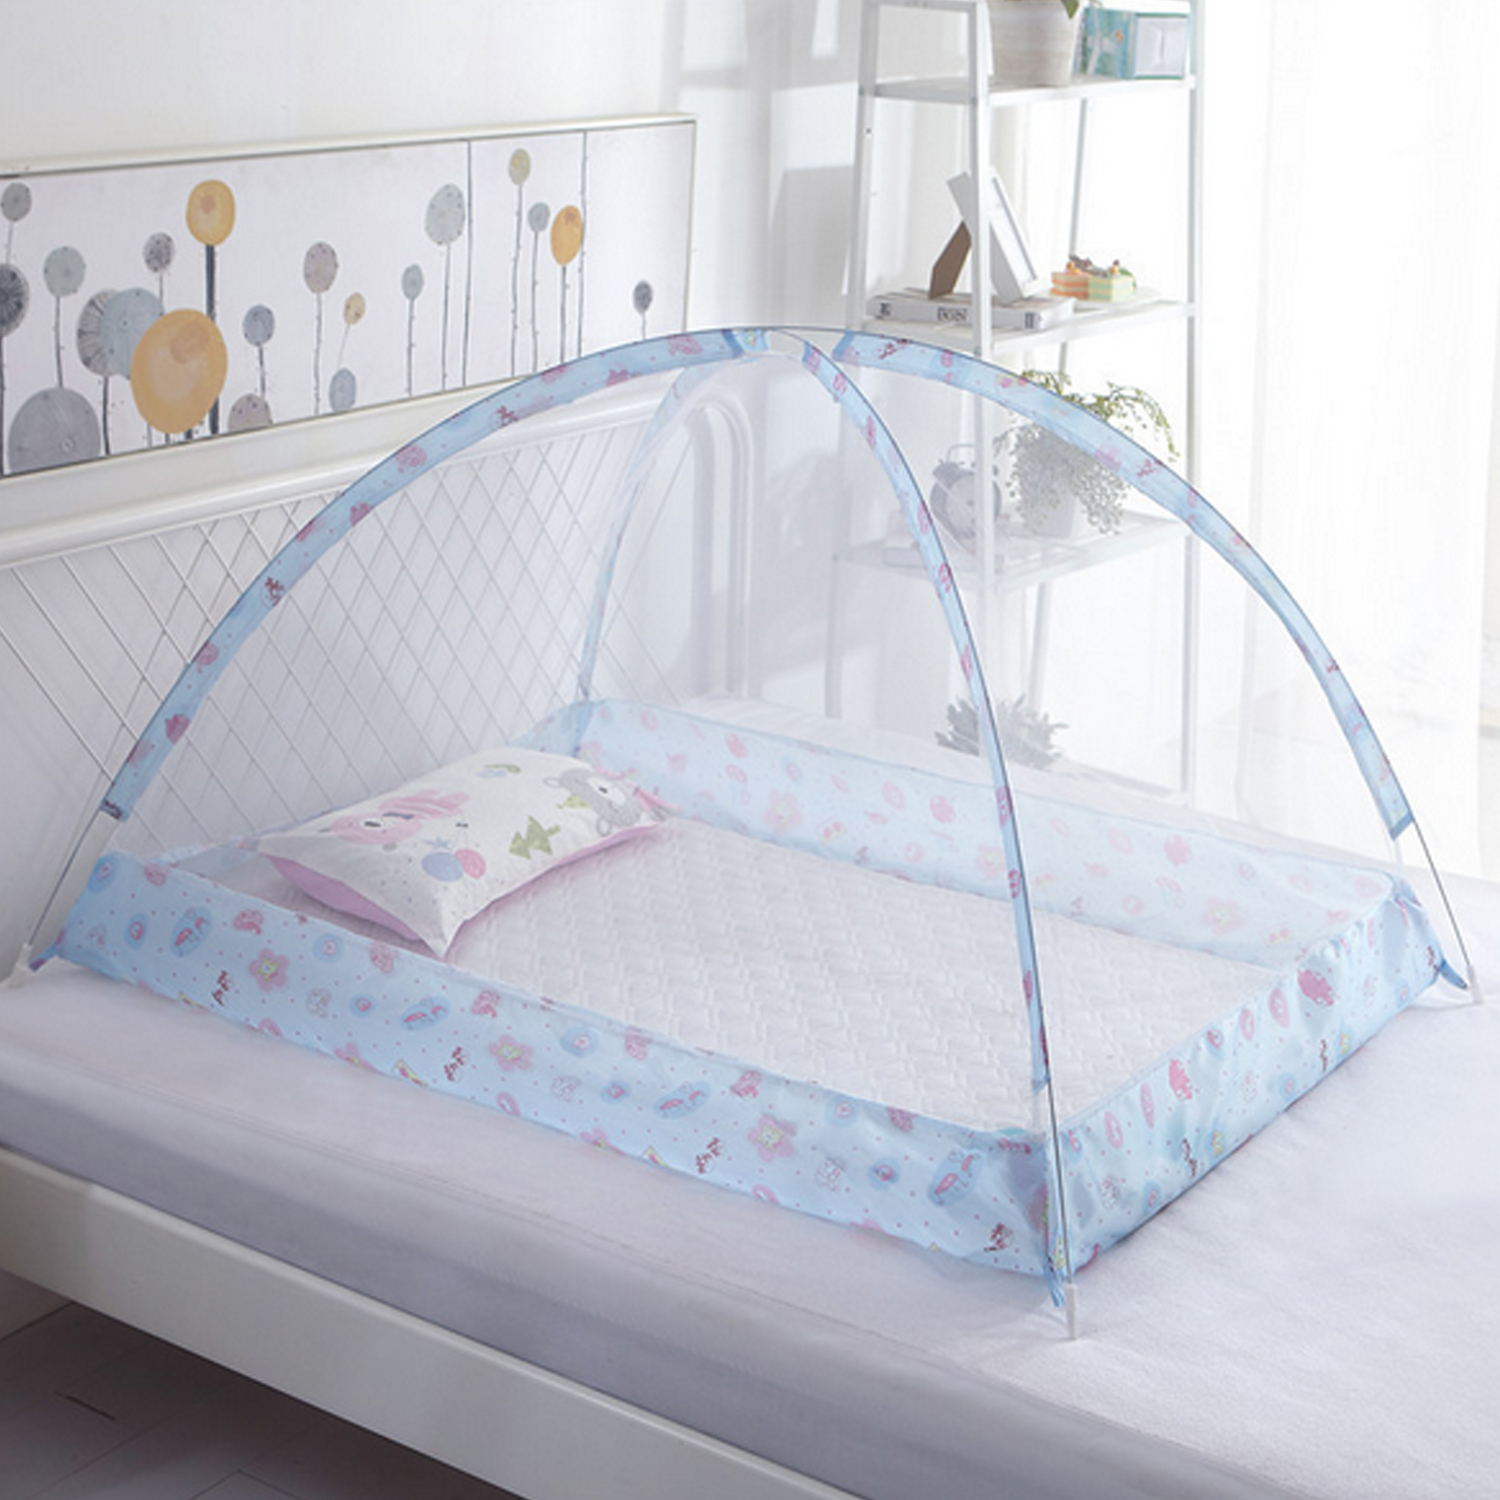 Portable Folding Baby Bed Children Mosquito Net Tent Kids Summer Cradle Bed Crib Sleeping Anti Mosquito Mesh Sleeping Cushion